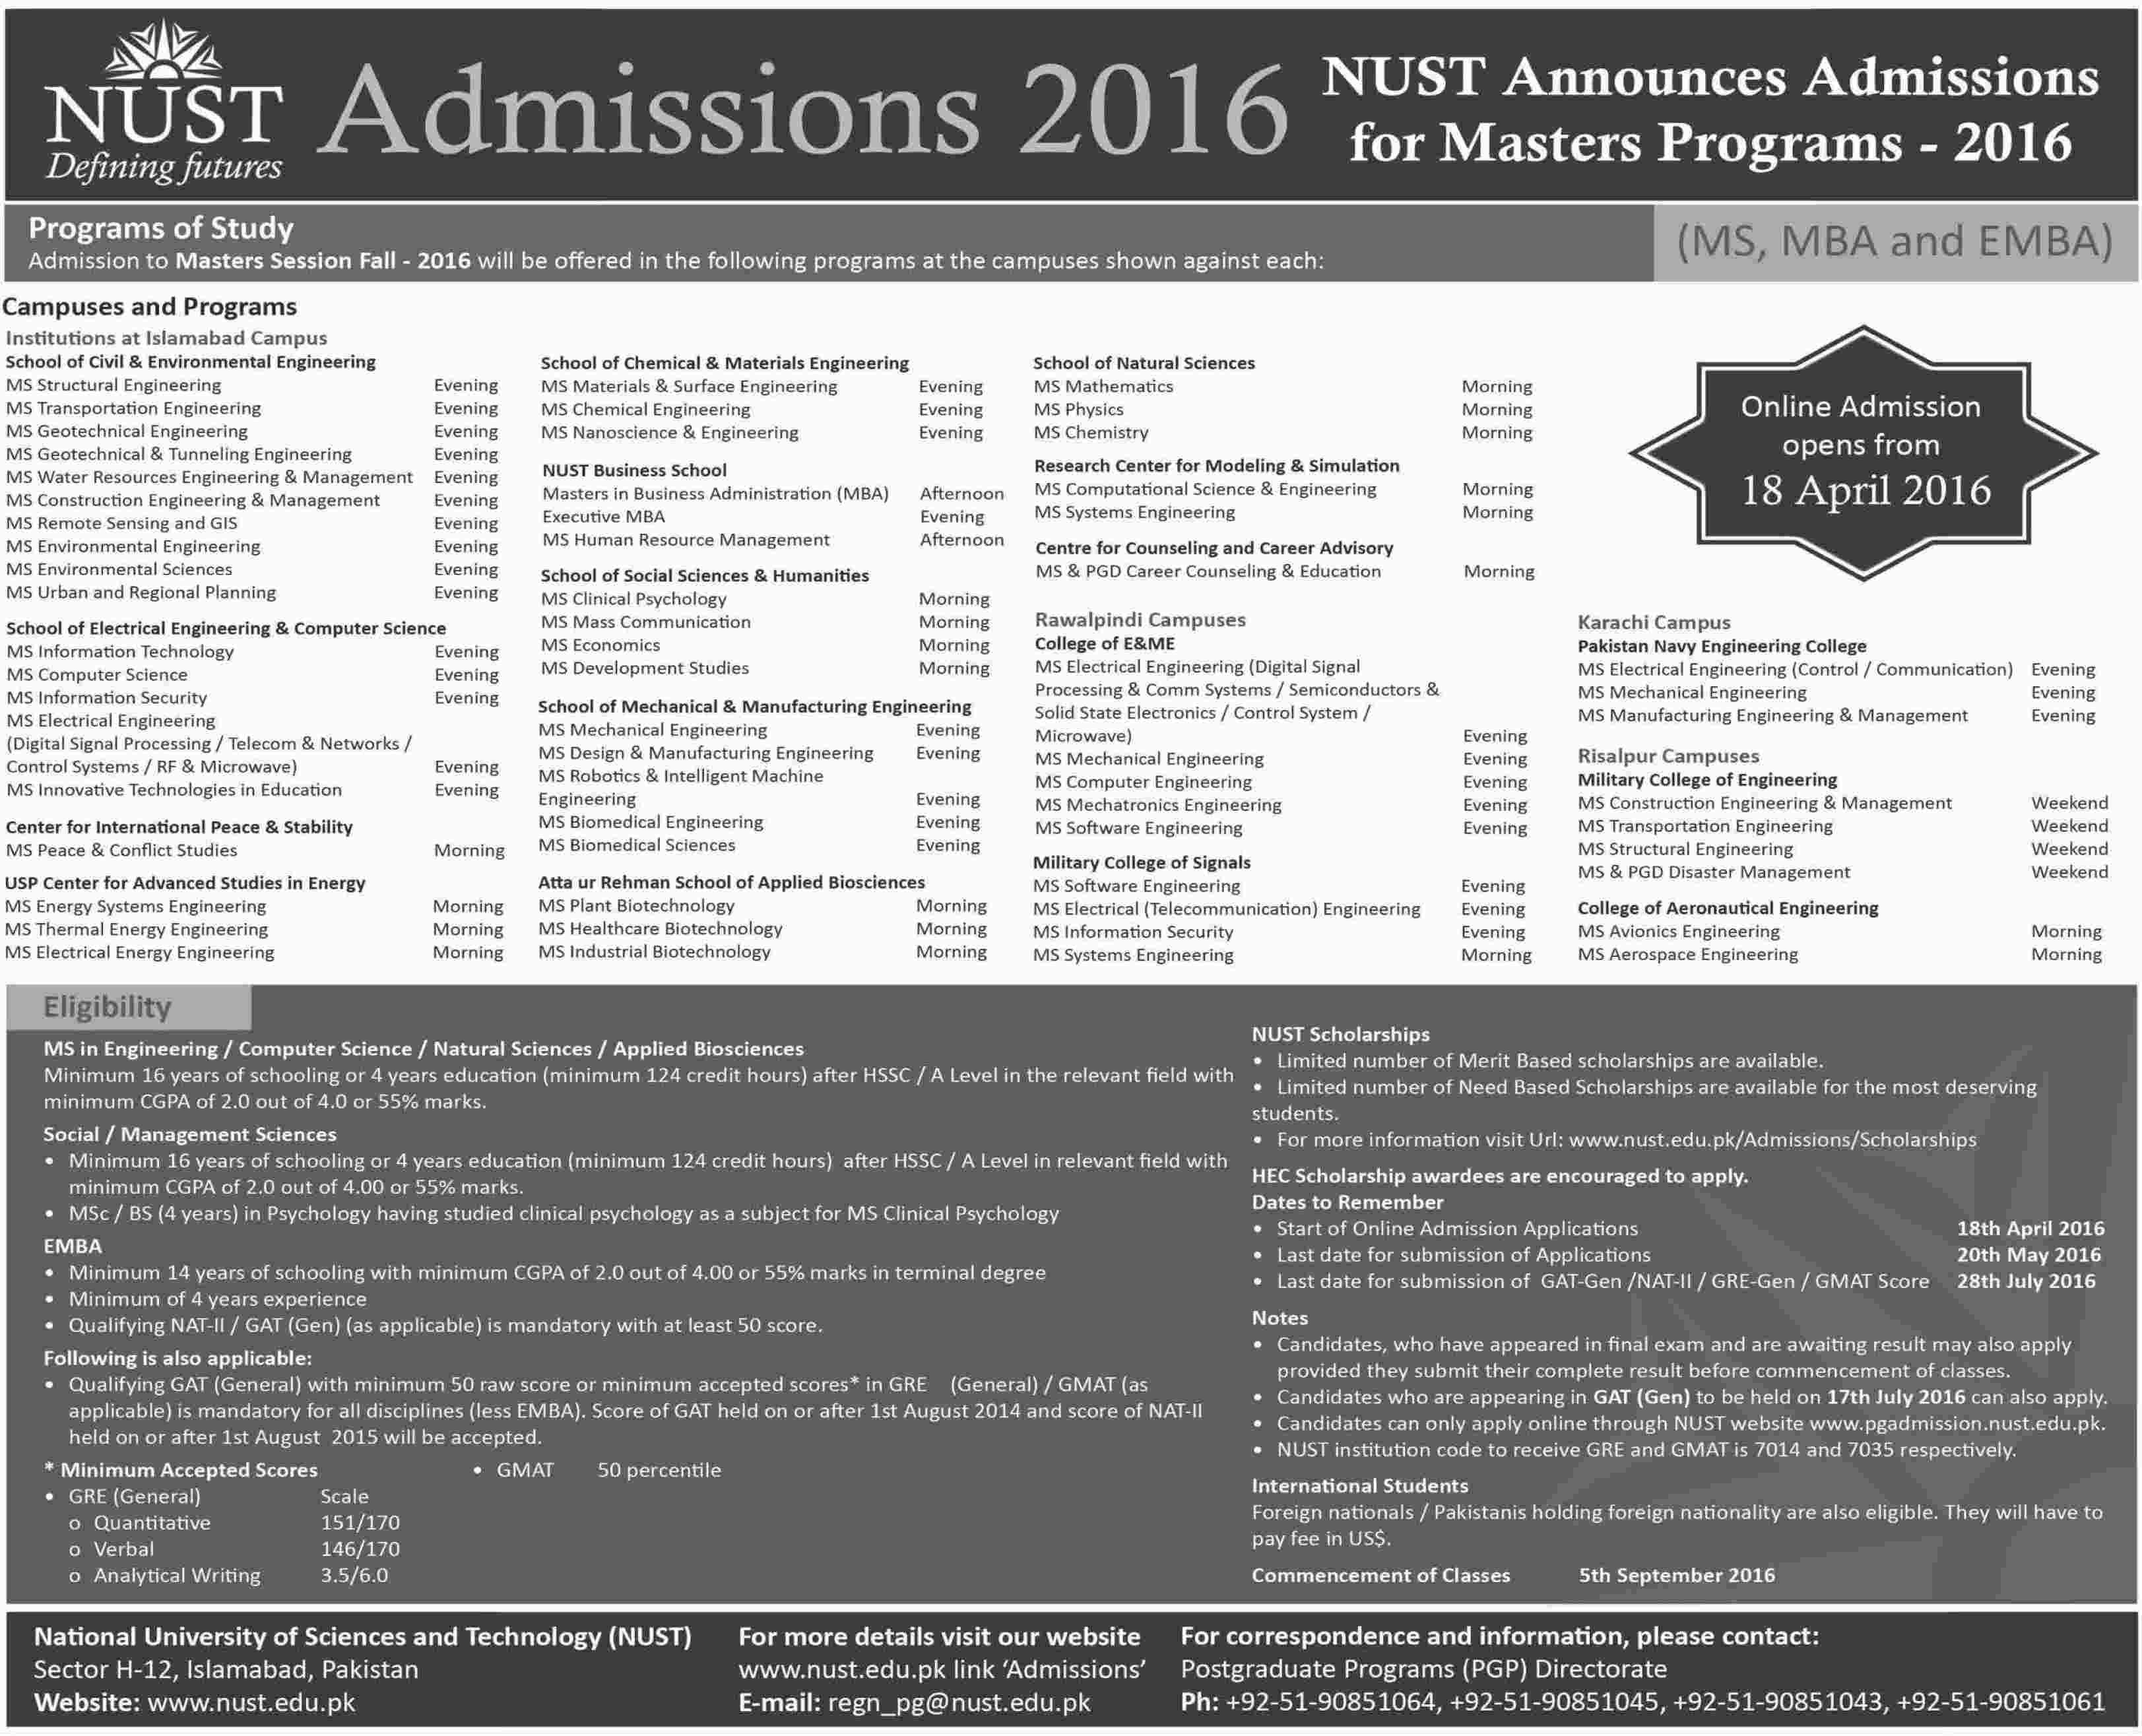 NUST University Masters Admission 2016 Form Online